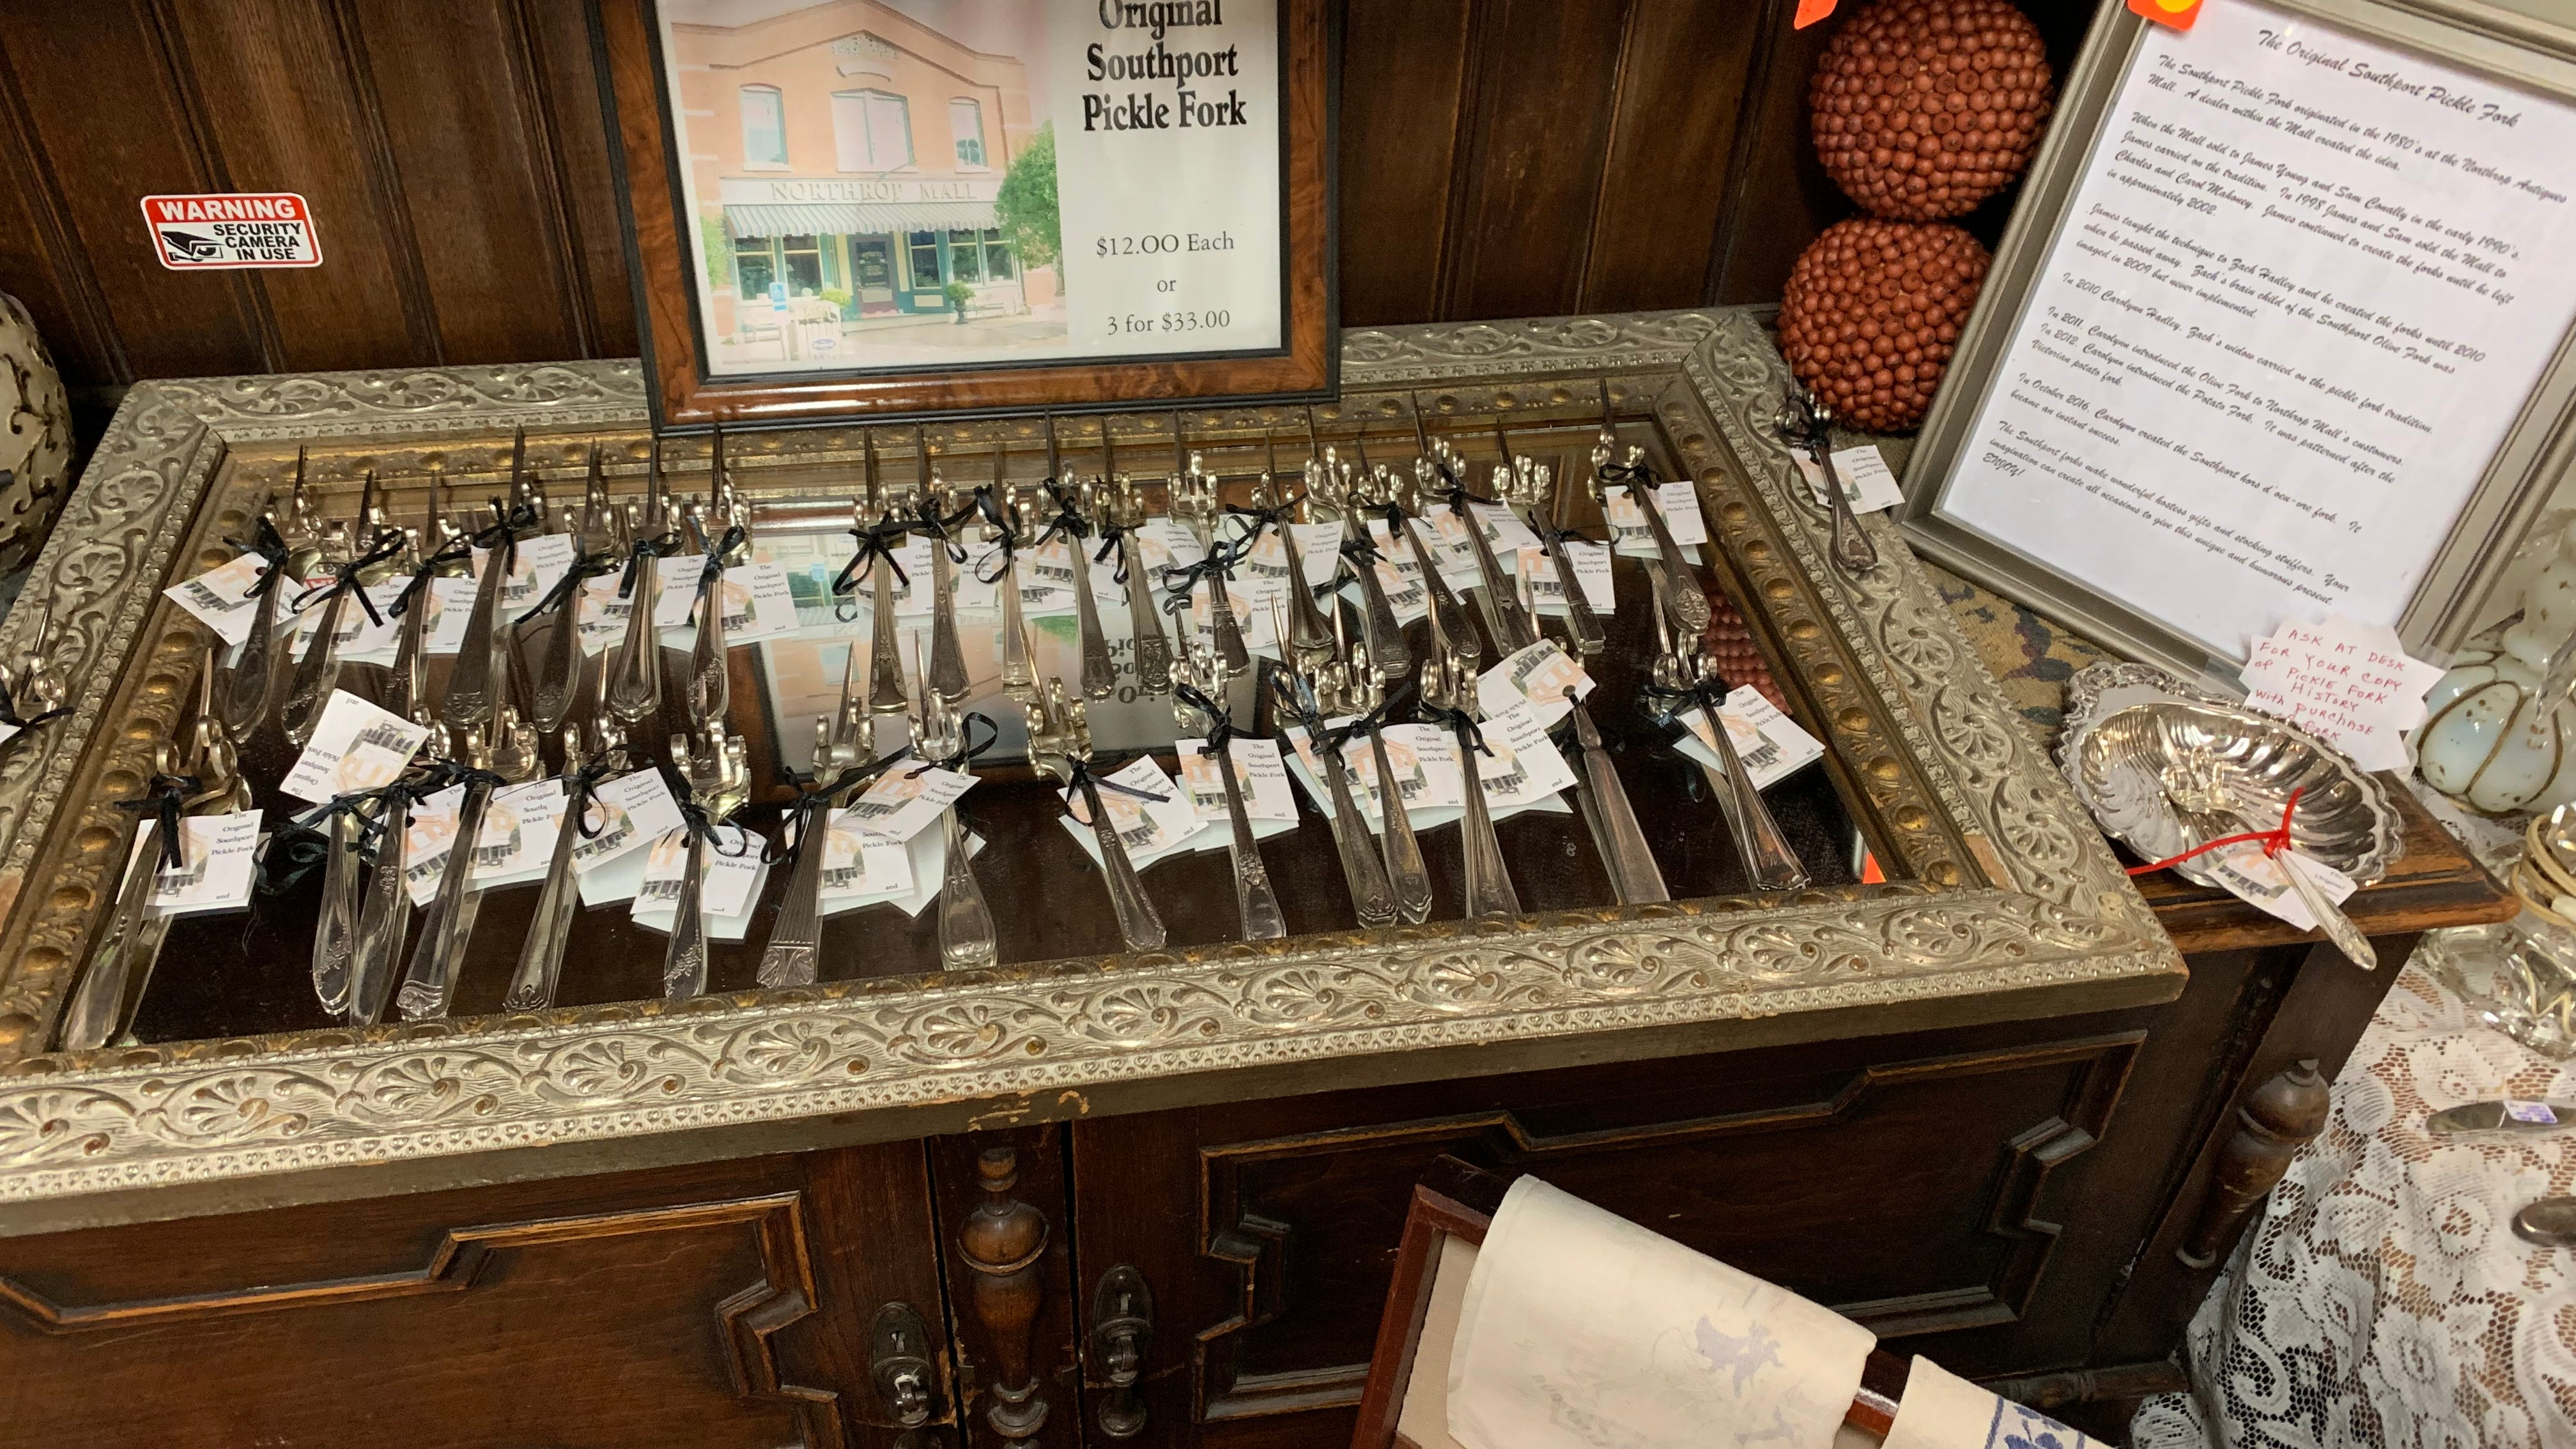 The Southport Pickle Fork was created in the 1980s and makes a great gift. Over the years, the olive fork, the potato fork and the Southport hors d'oeu-vre fork have come along and make great gift items.